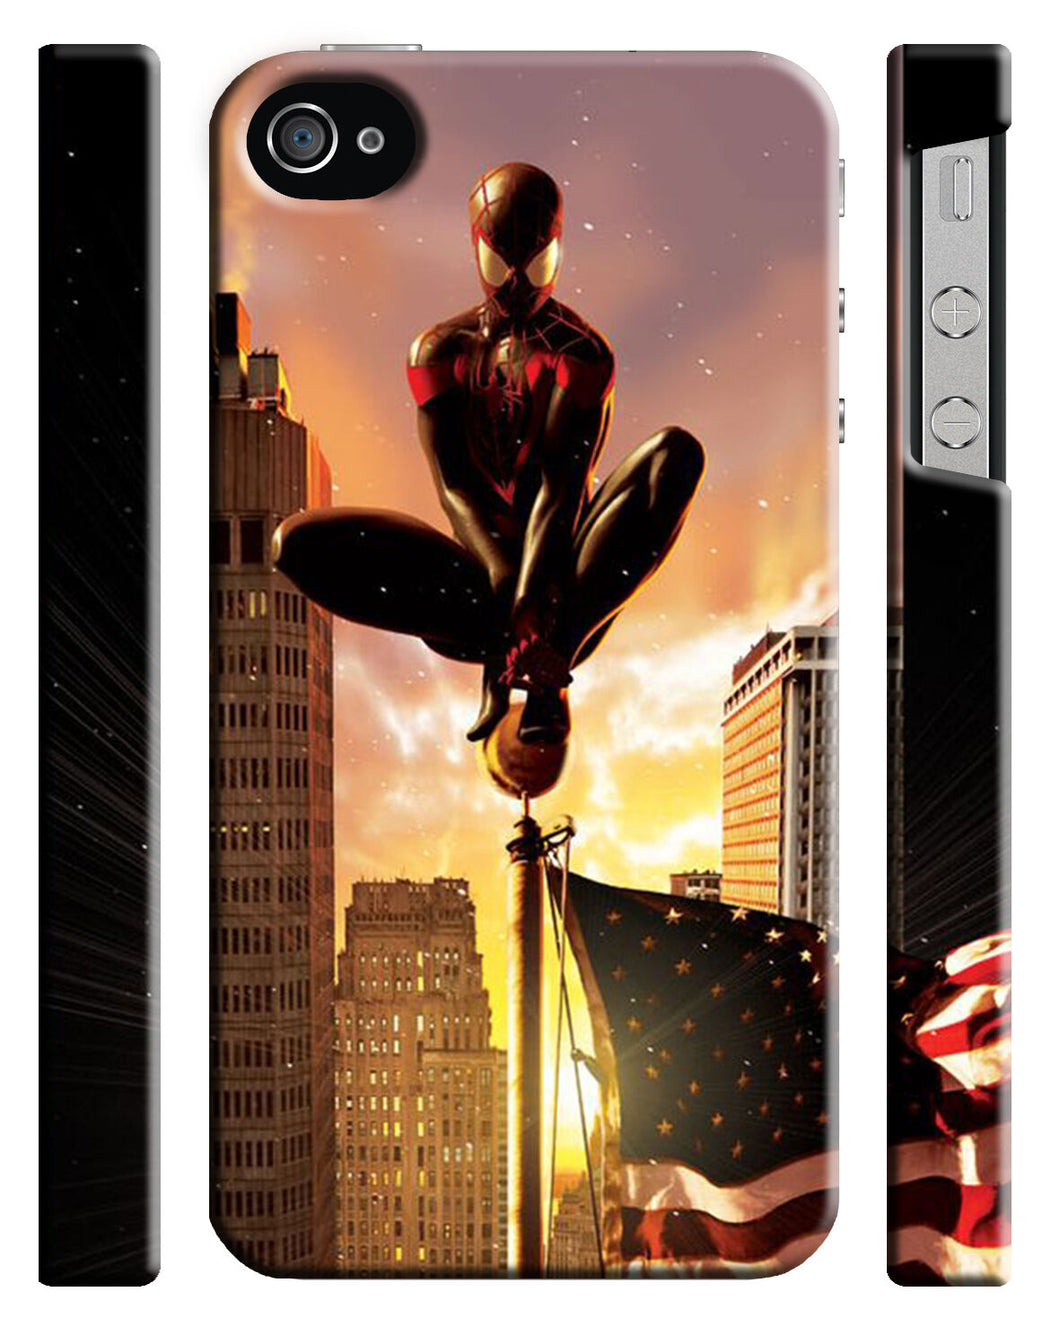 Iphone 4 4s 5 5s 5c 6 6S + Plus Cover Case Amazing Spider-Man Hero Comics 19